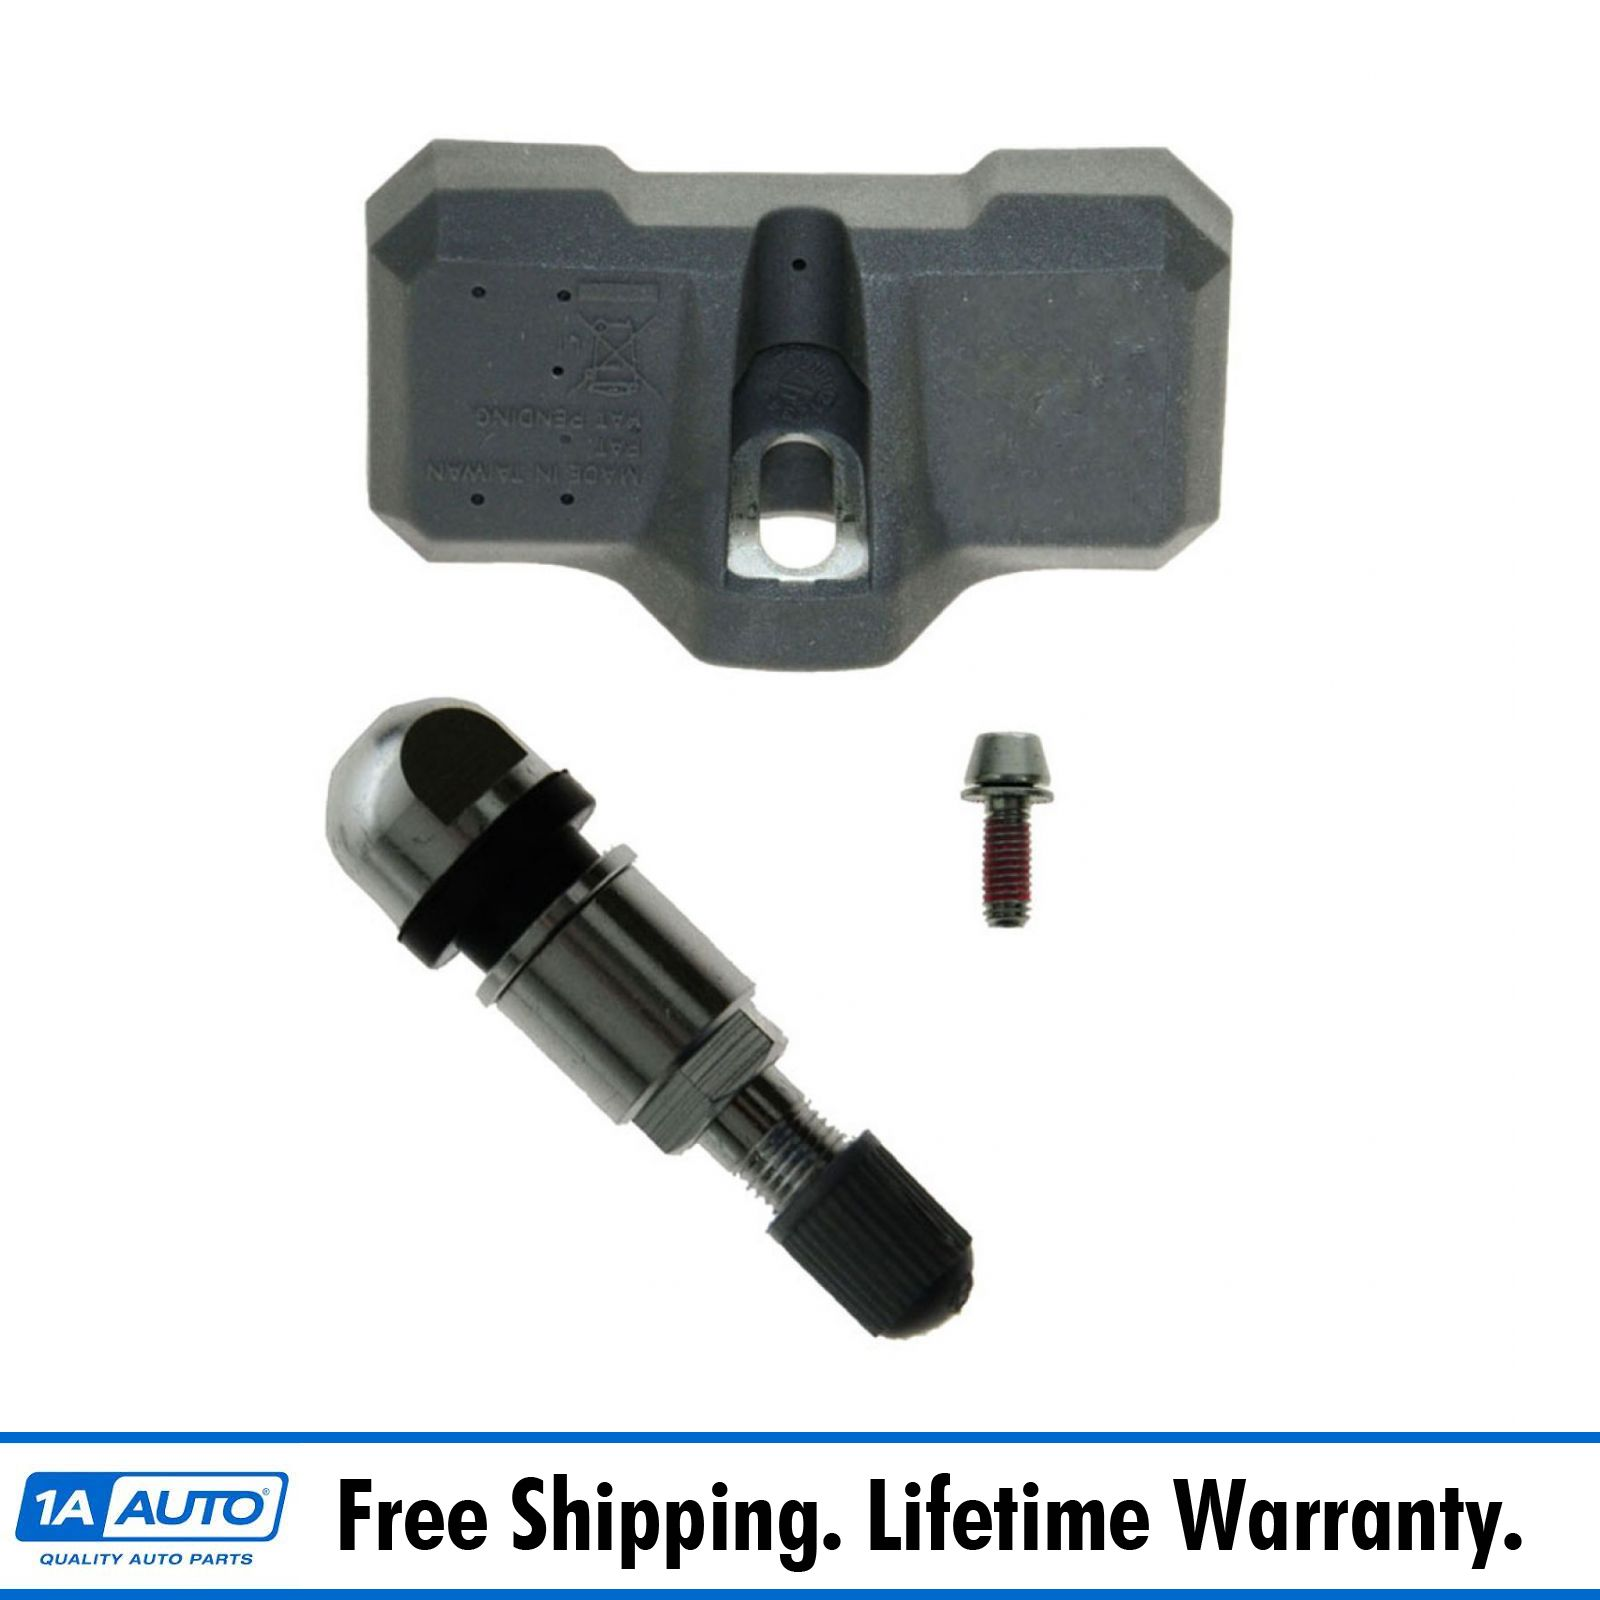 Mitsubishi Tpms Sensor: Dorman Tire Pressure Monitor Sensor TPMS New For